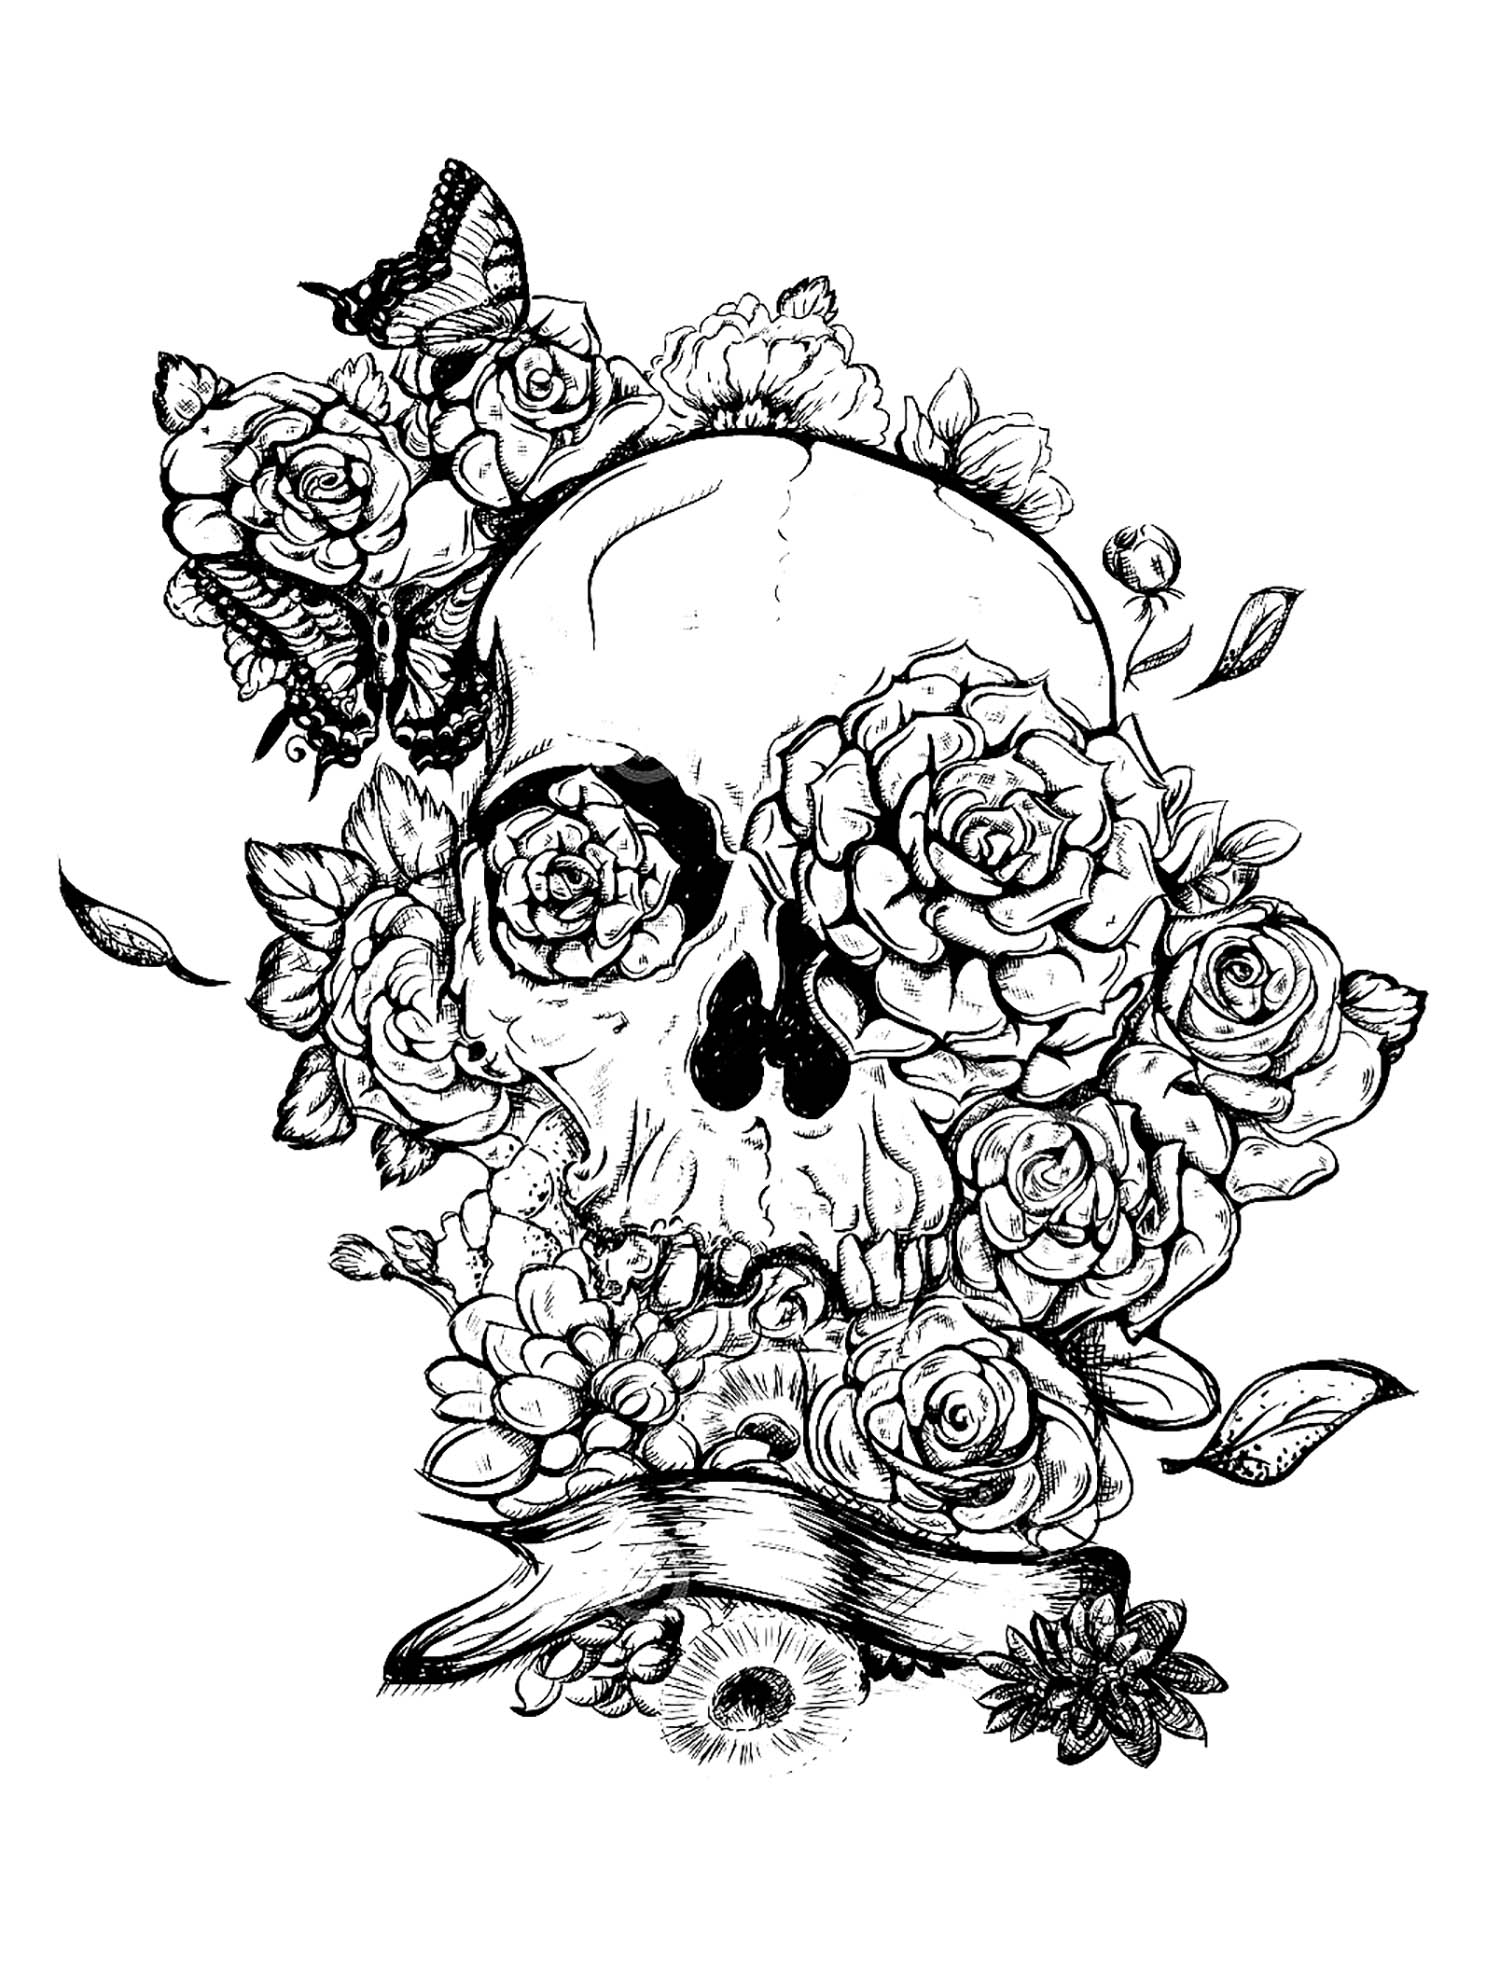 Hearts On Fire Coloring Pages 4 by Karen | Coloring pages, Skull ... | 1977x1500